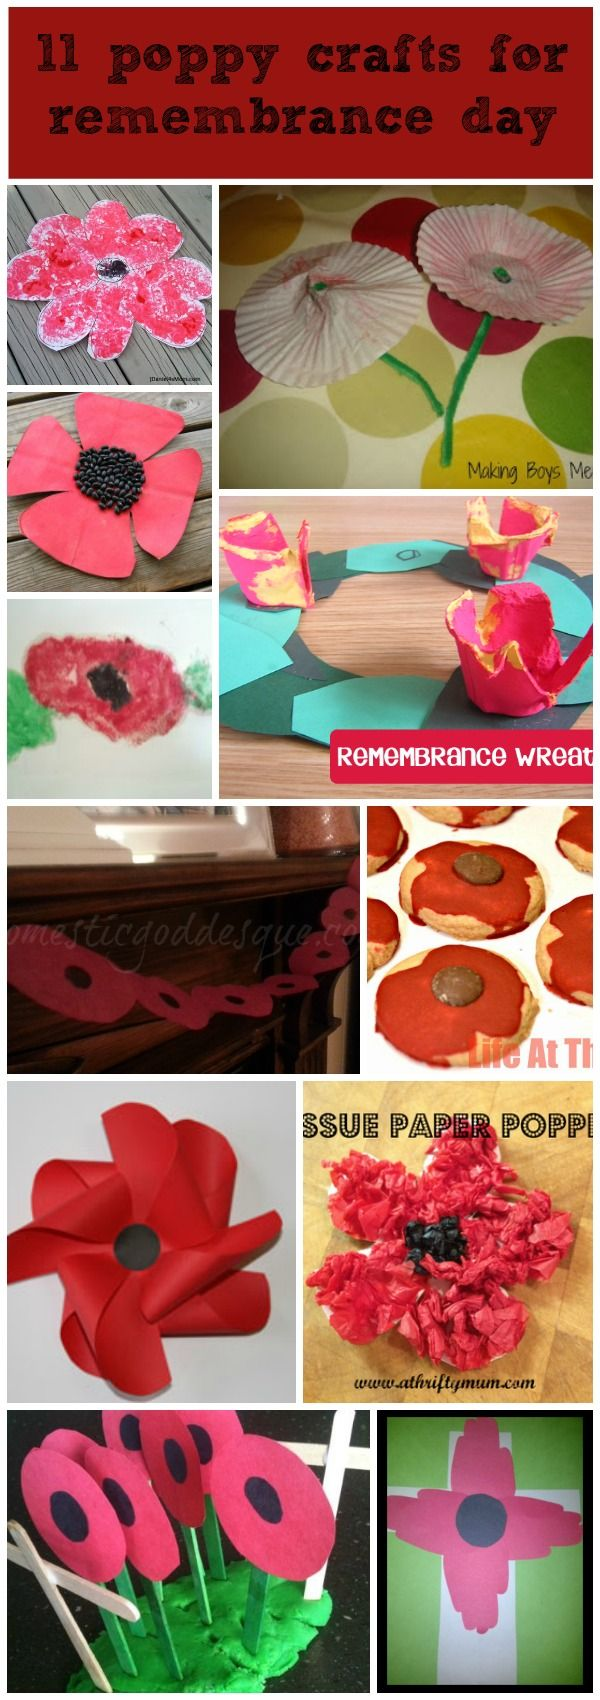 11 poppy crafts for the 11th remembrance day